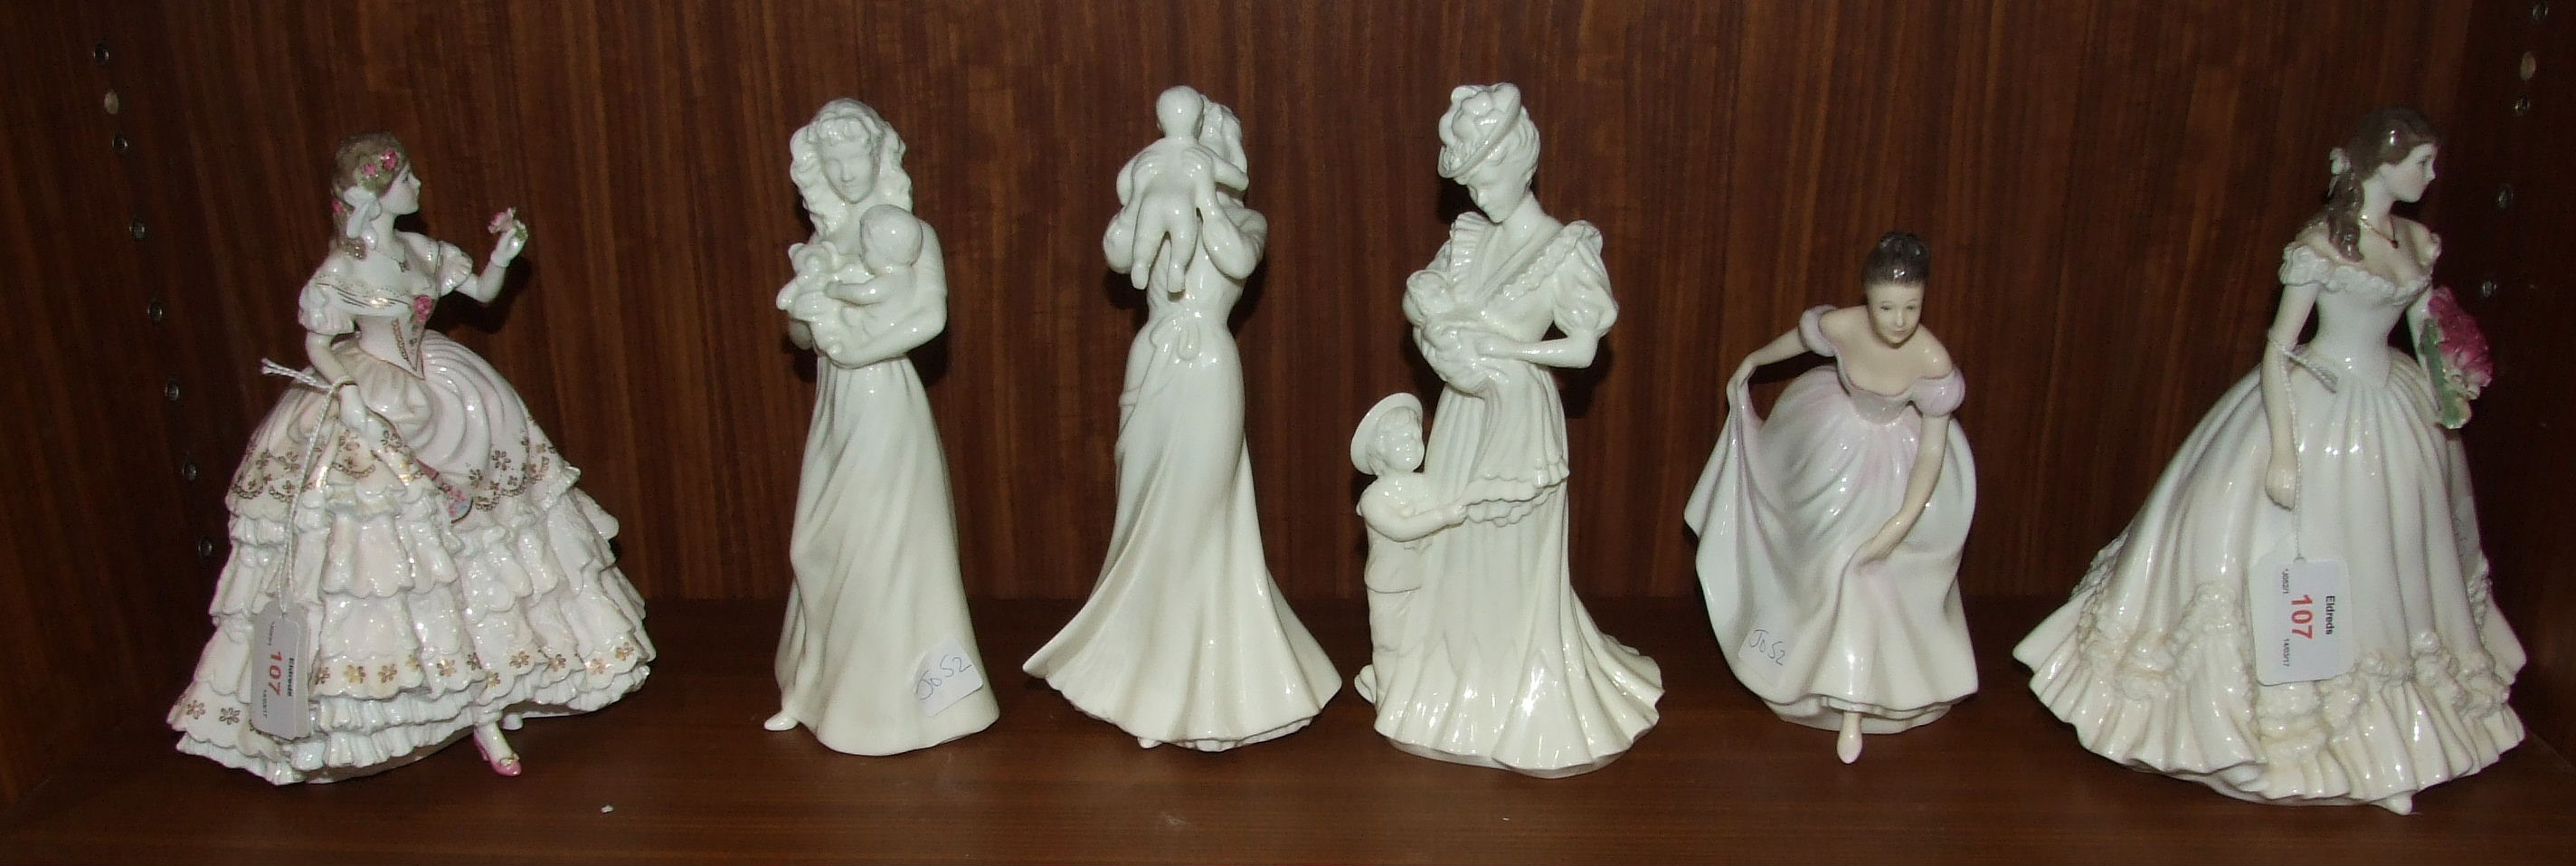 Lot 107 - Five Royal Worcester figurines, First Teddy, First Smile, The Christening, The Fairest Rose,